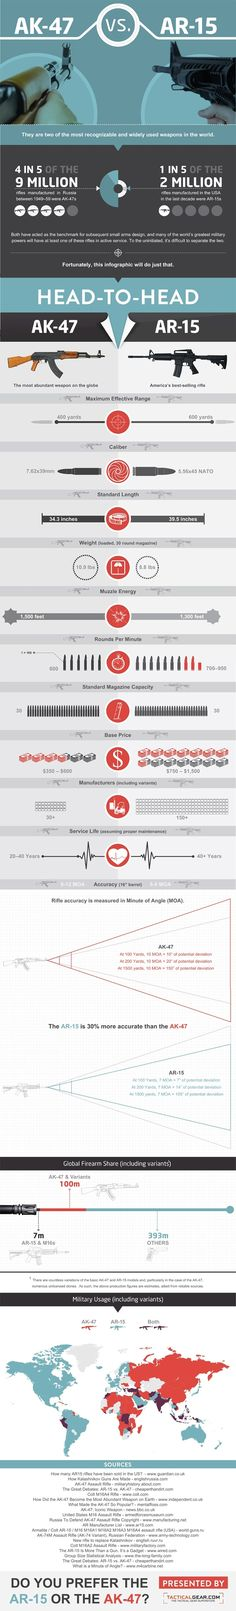 """Great infographic side-by-side comparison: """"AK-47 vs. AR-15: Which Is the Better Rifle?"""""""